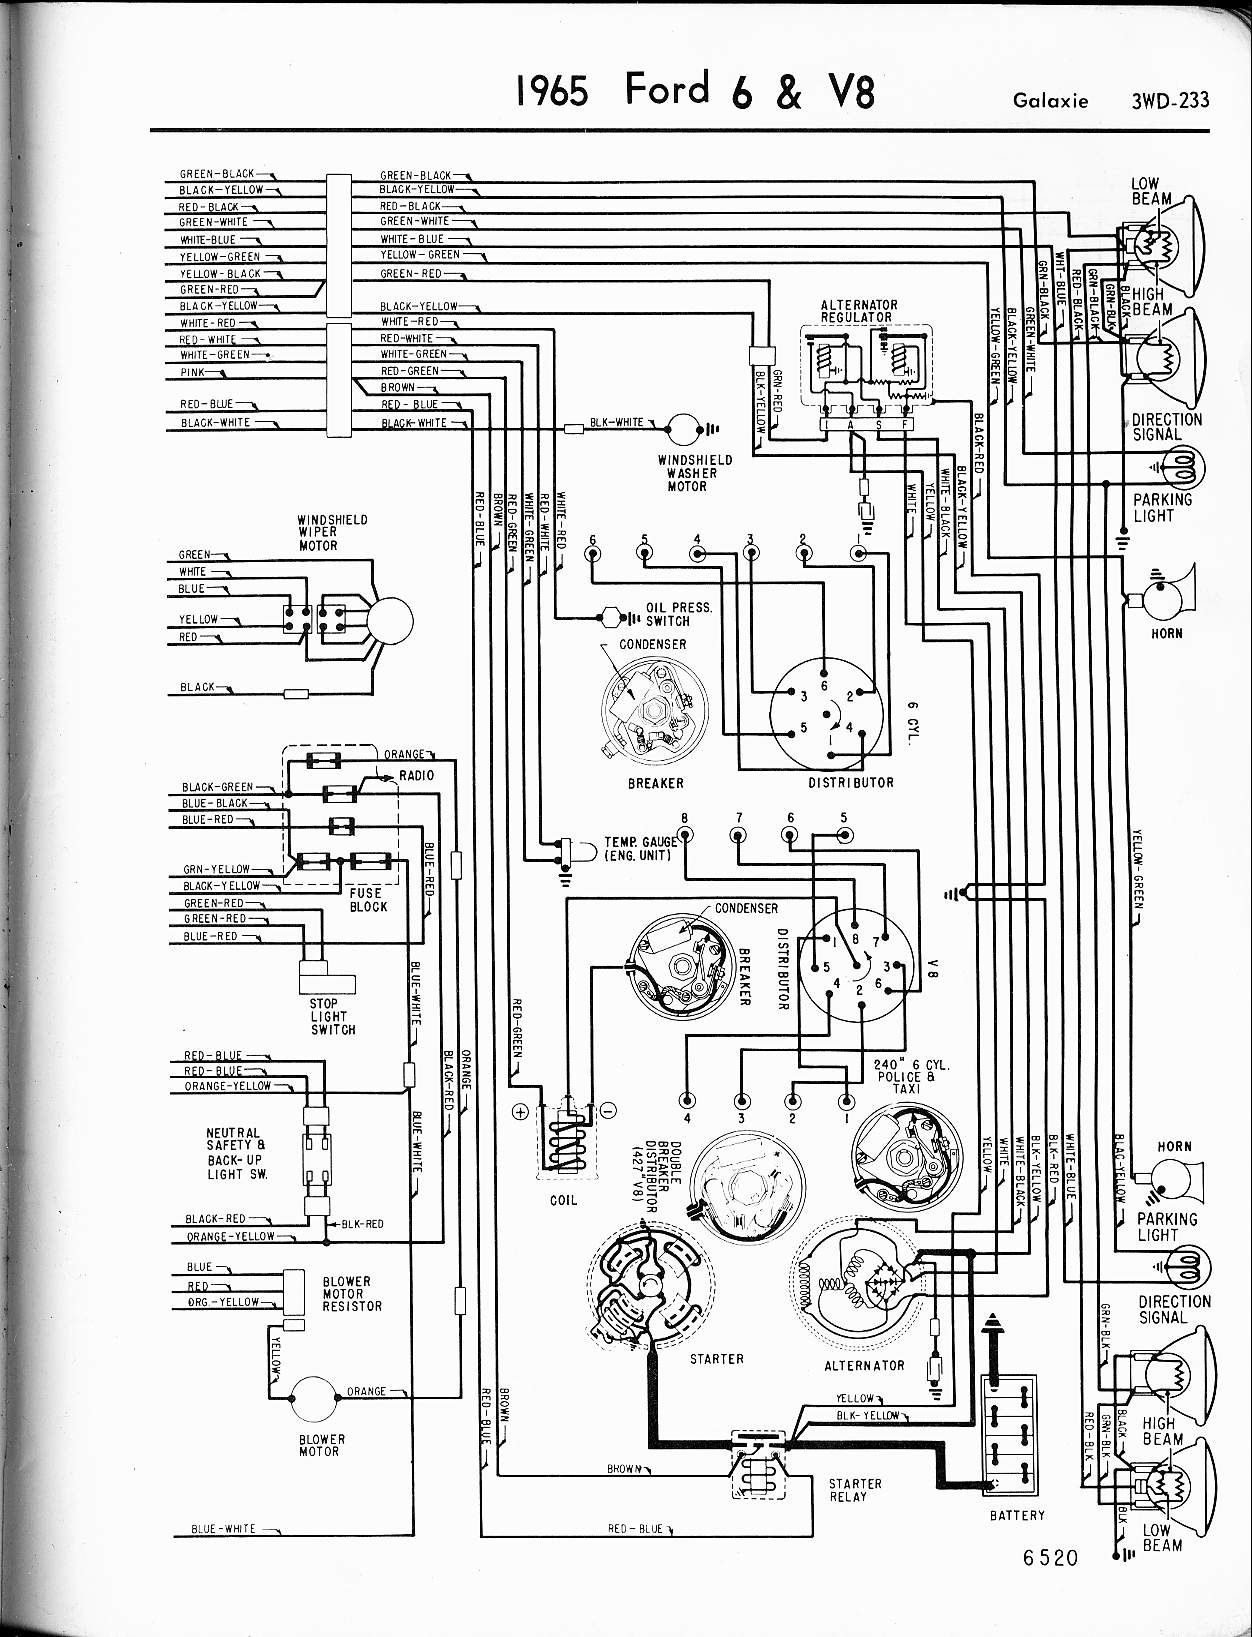 2001 Mercury Grand Marquis Wiring Diagrams Hecho